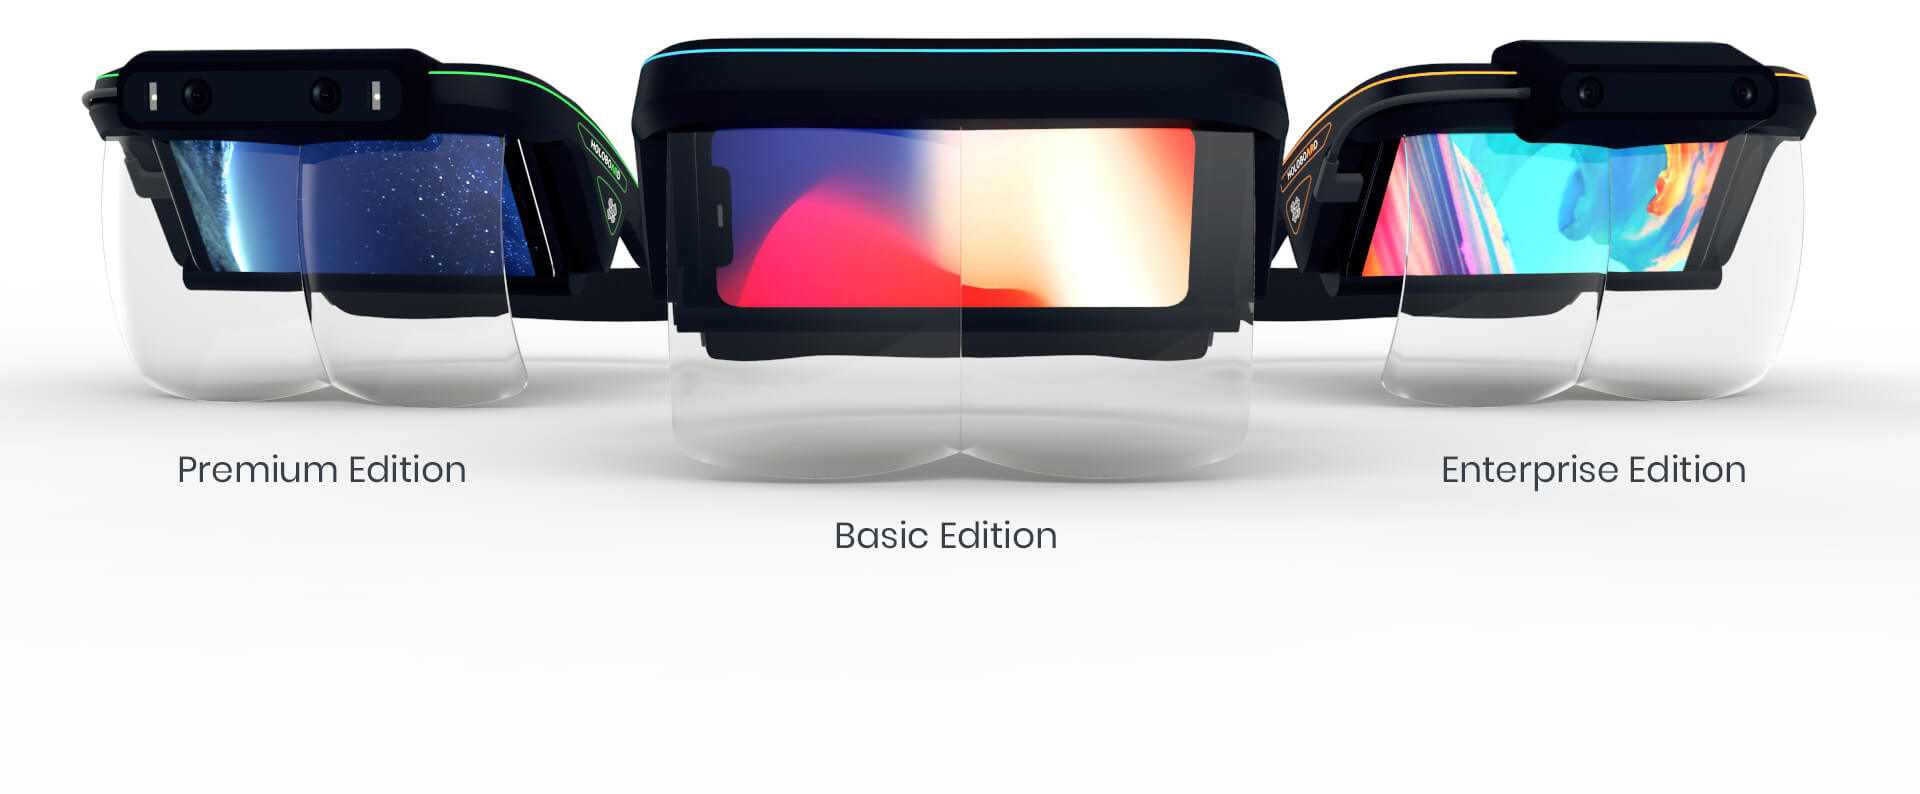 Versions of Holoboard Mixed Reality Headset